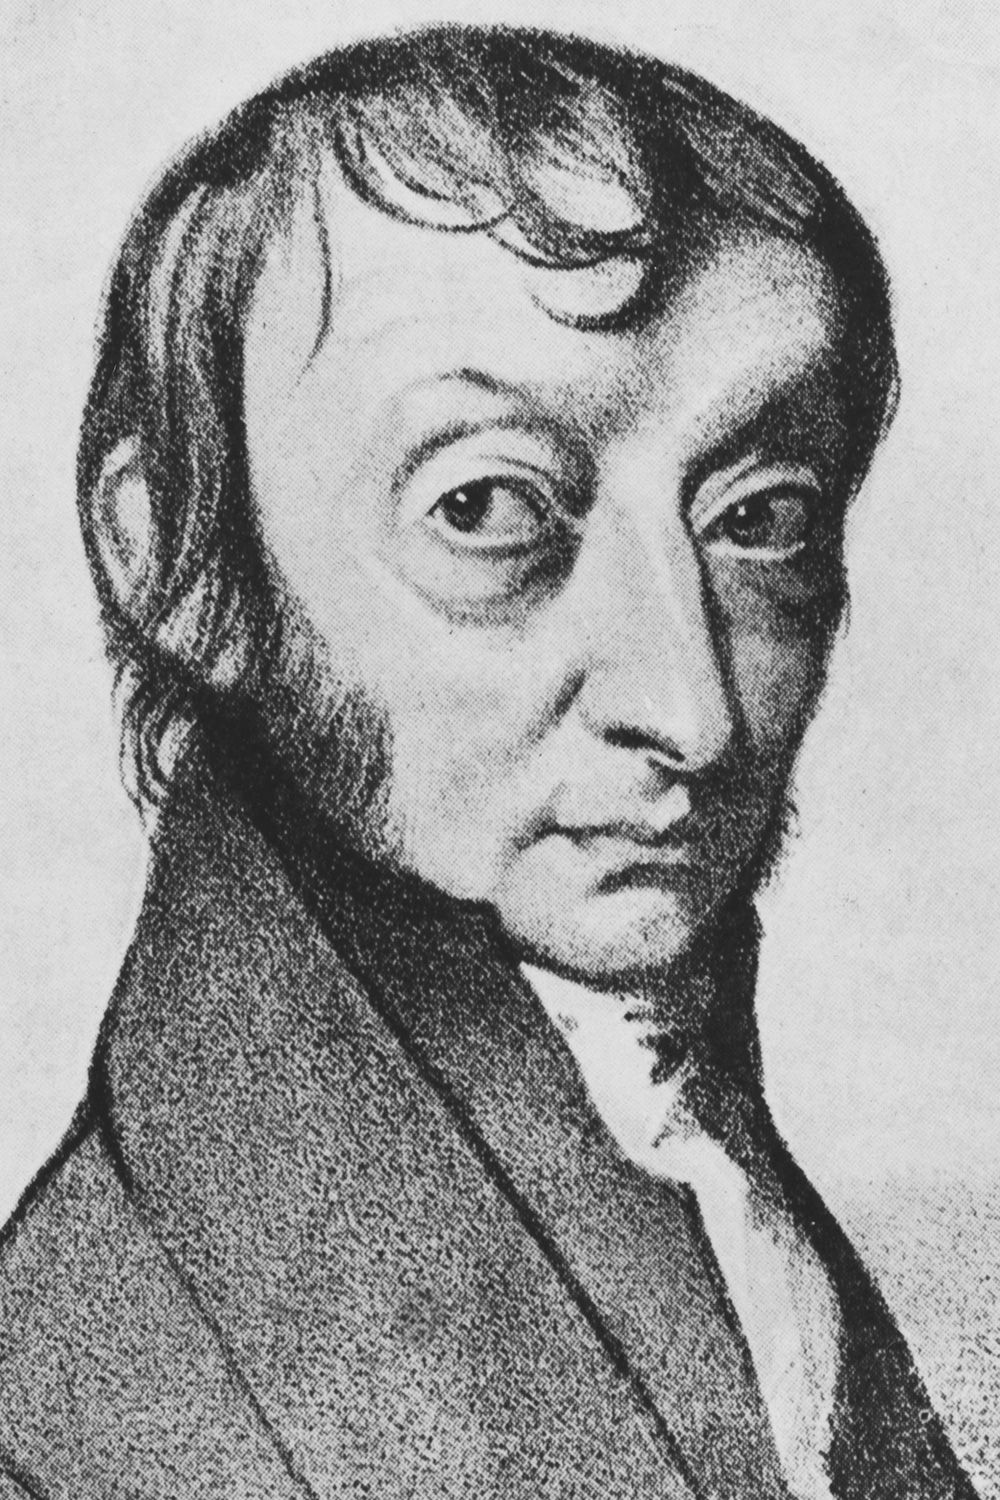 a biography of avogadro Synopsis early life and career dalton's law atomic theory later life   twenty years later, chemist amedeo avogadro would further detail.